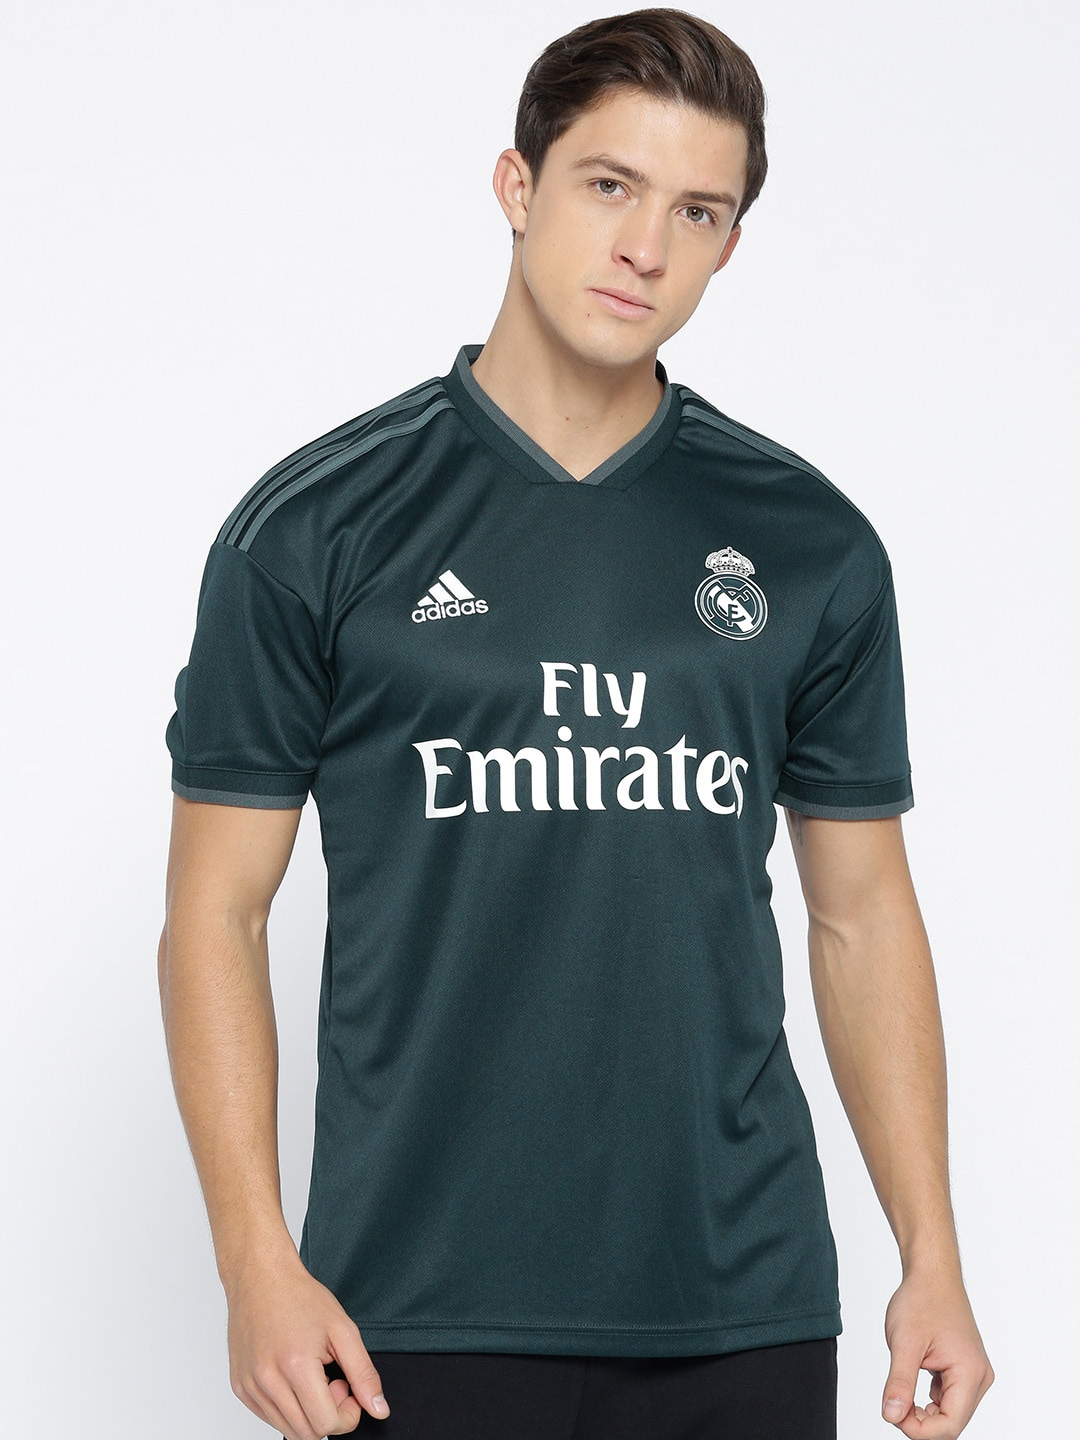 fb5de36cd Adidas Jersey - Buy Adidas Jersey online in India